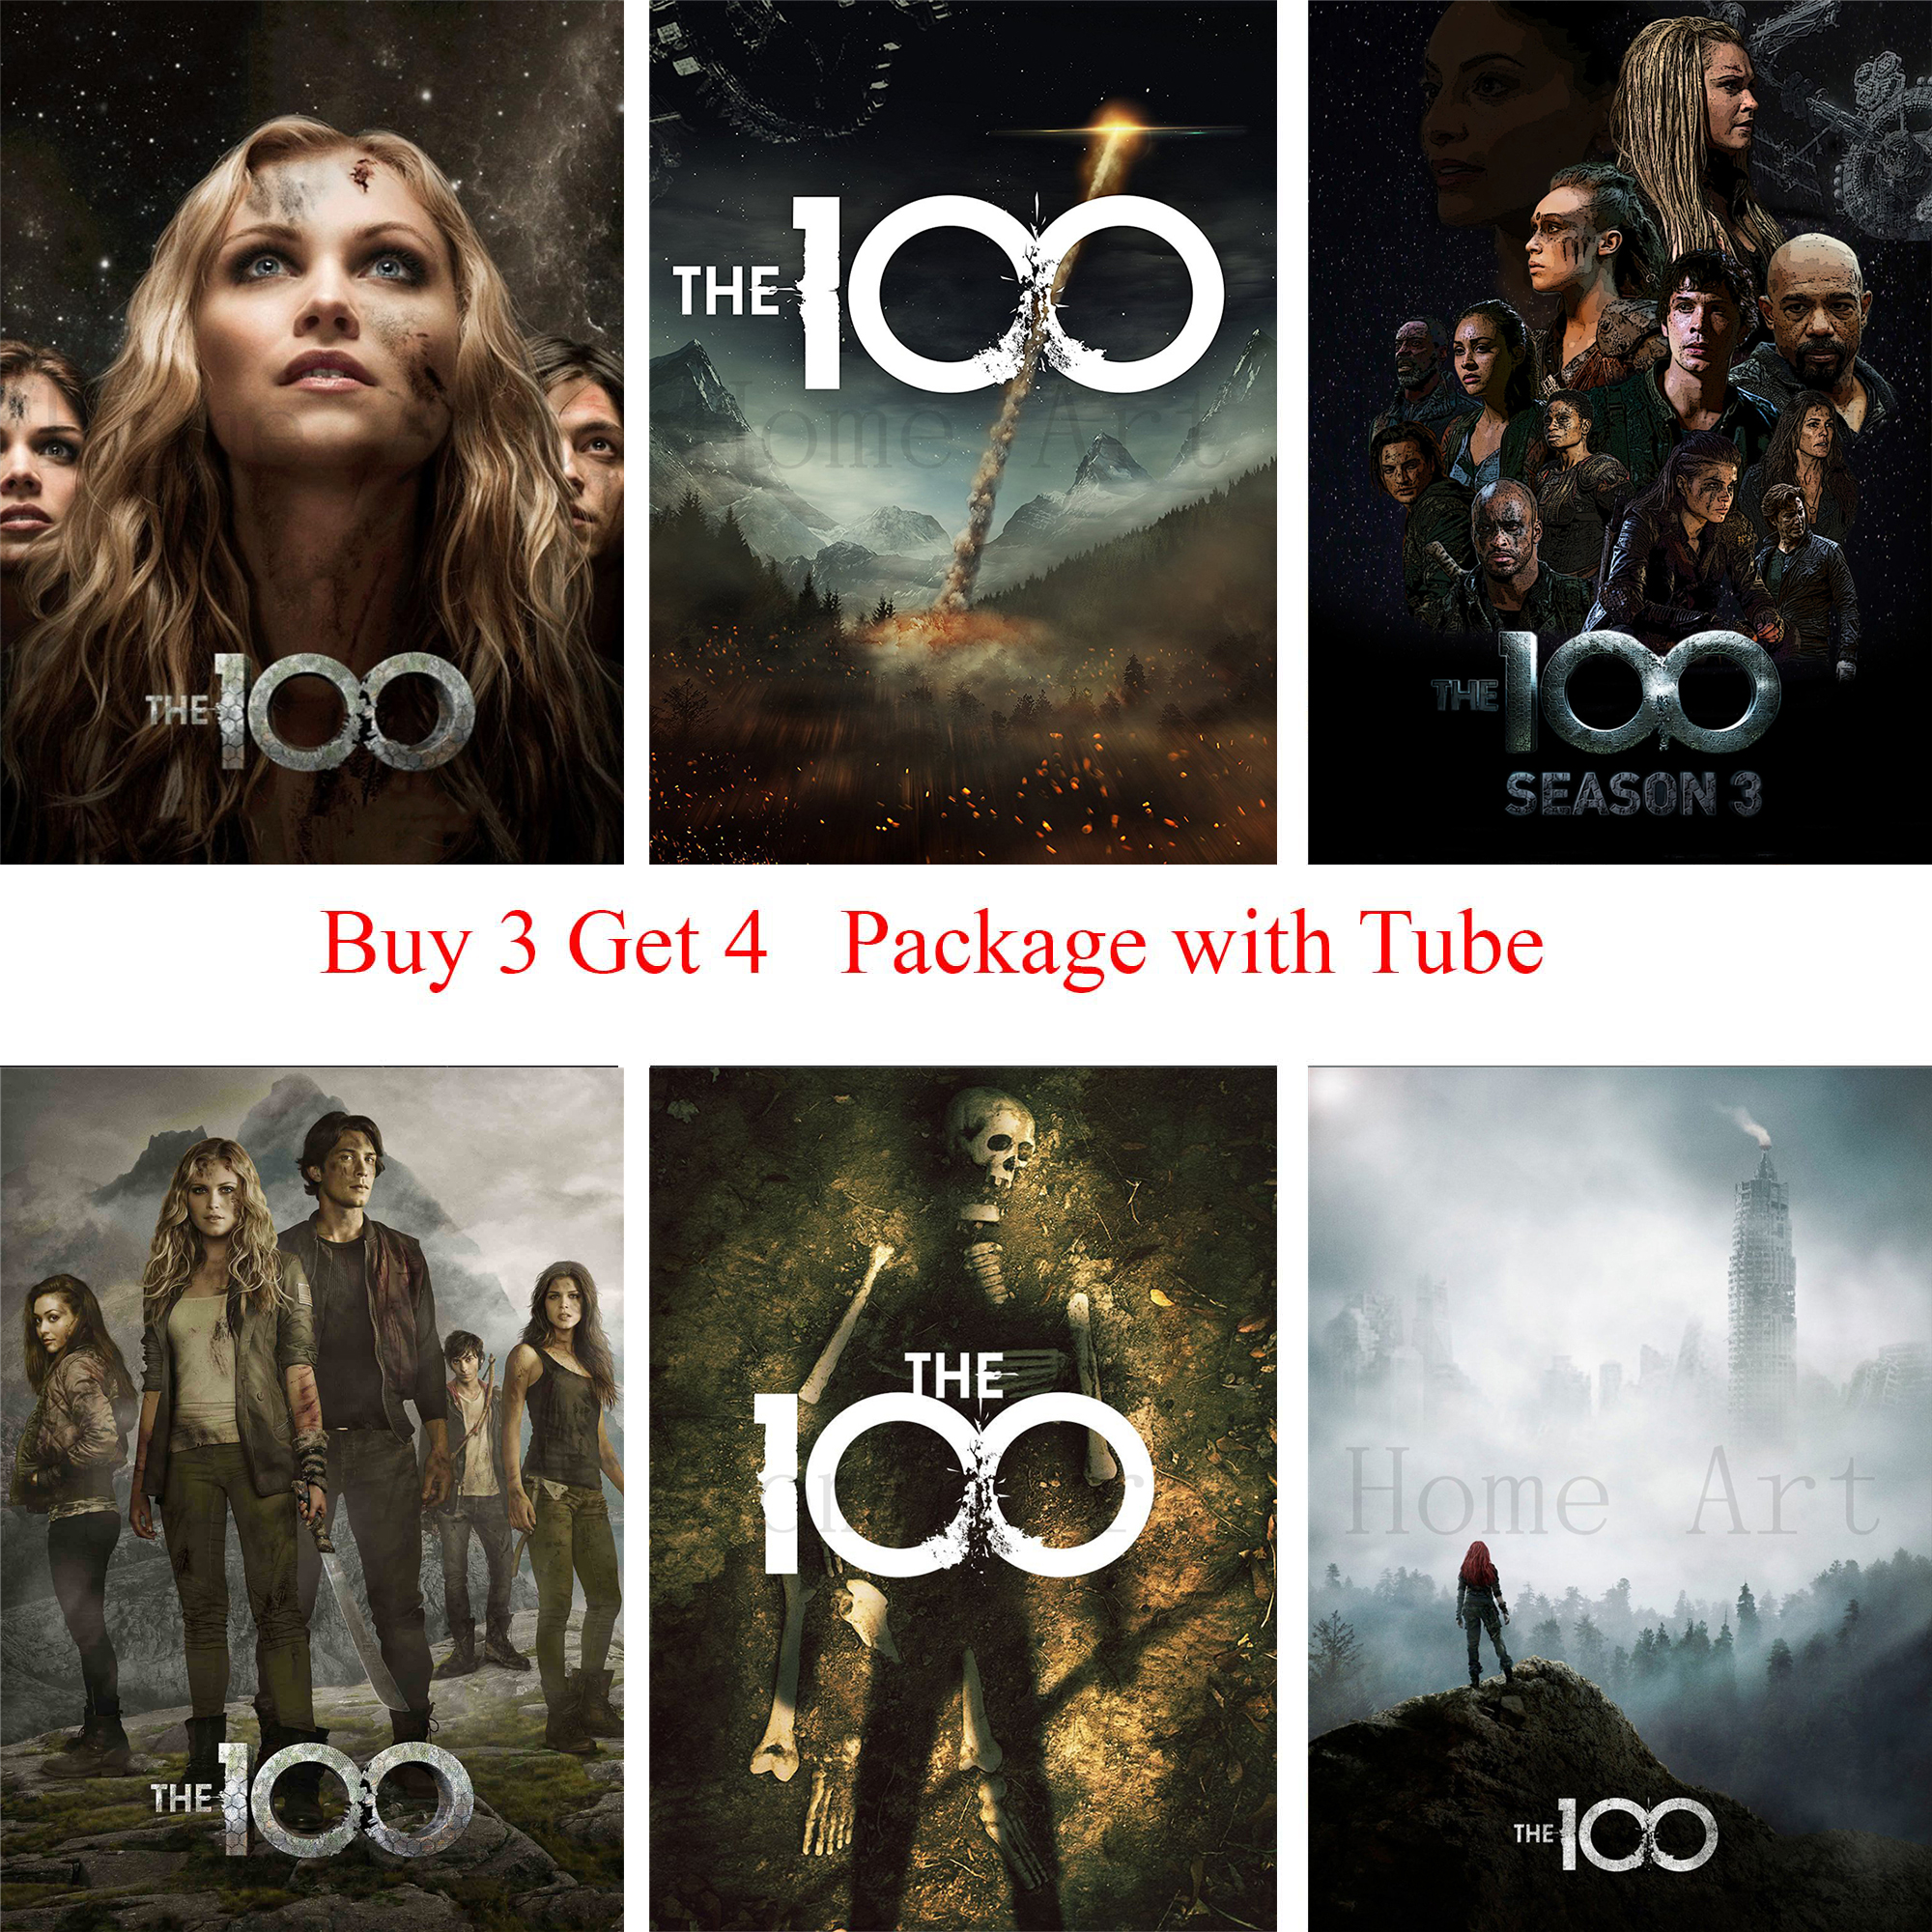 The 100 Poster Clear Image Wall Stickers Home Decoration High Quality Prints White Coated Paper Home Art Brand